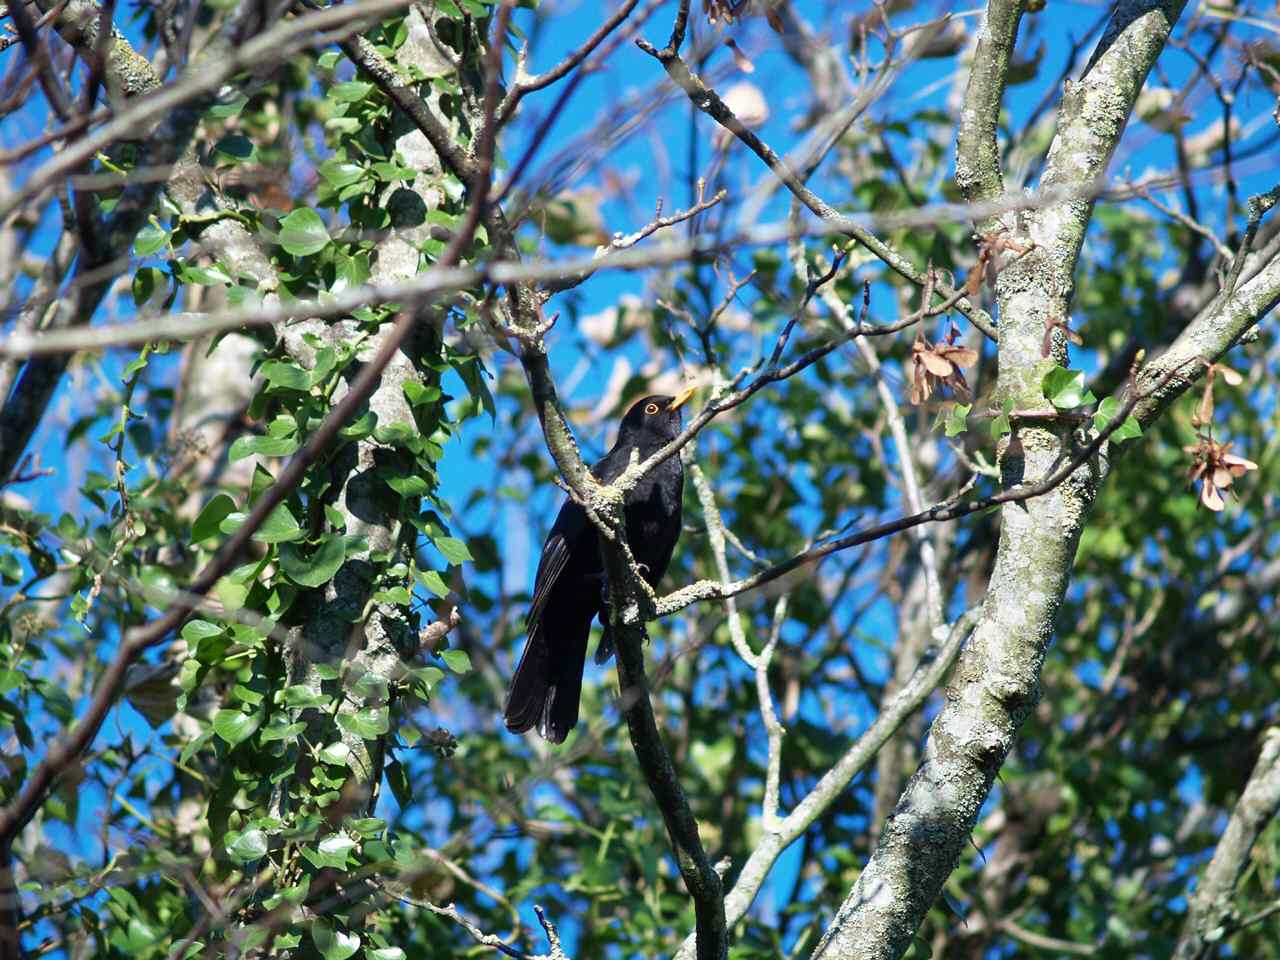 Anglesey, Blackbird in a tree